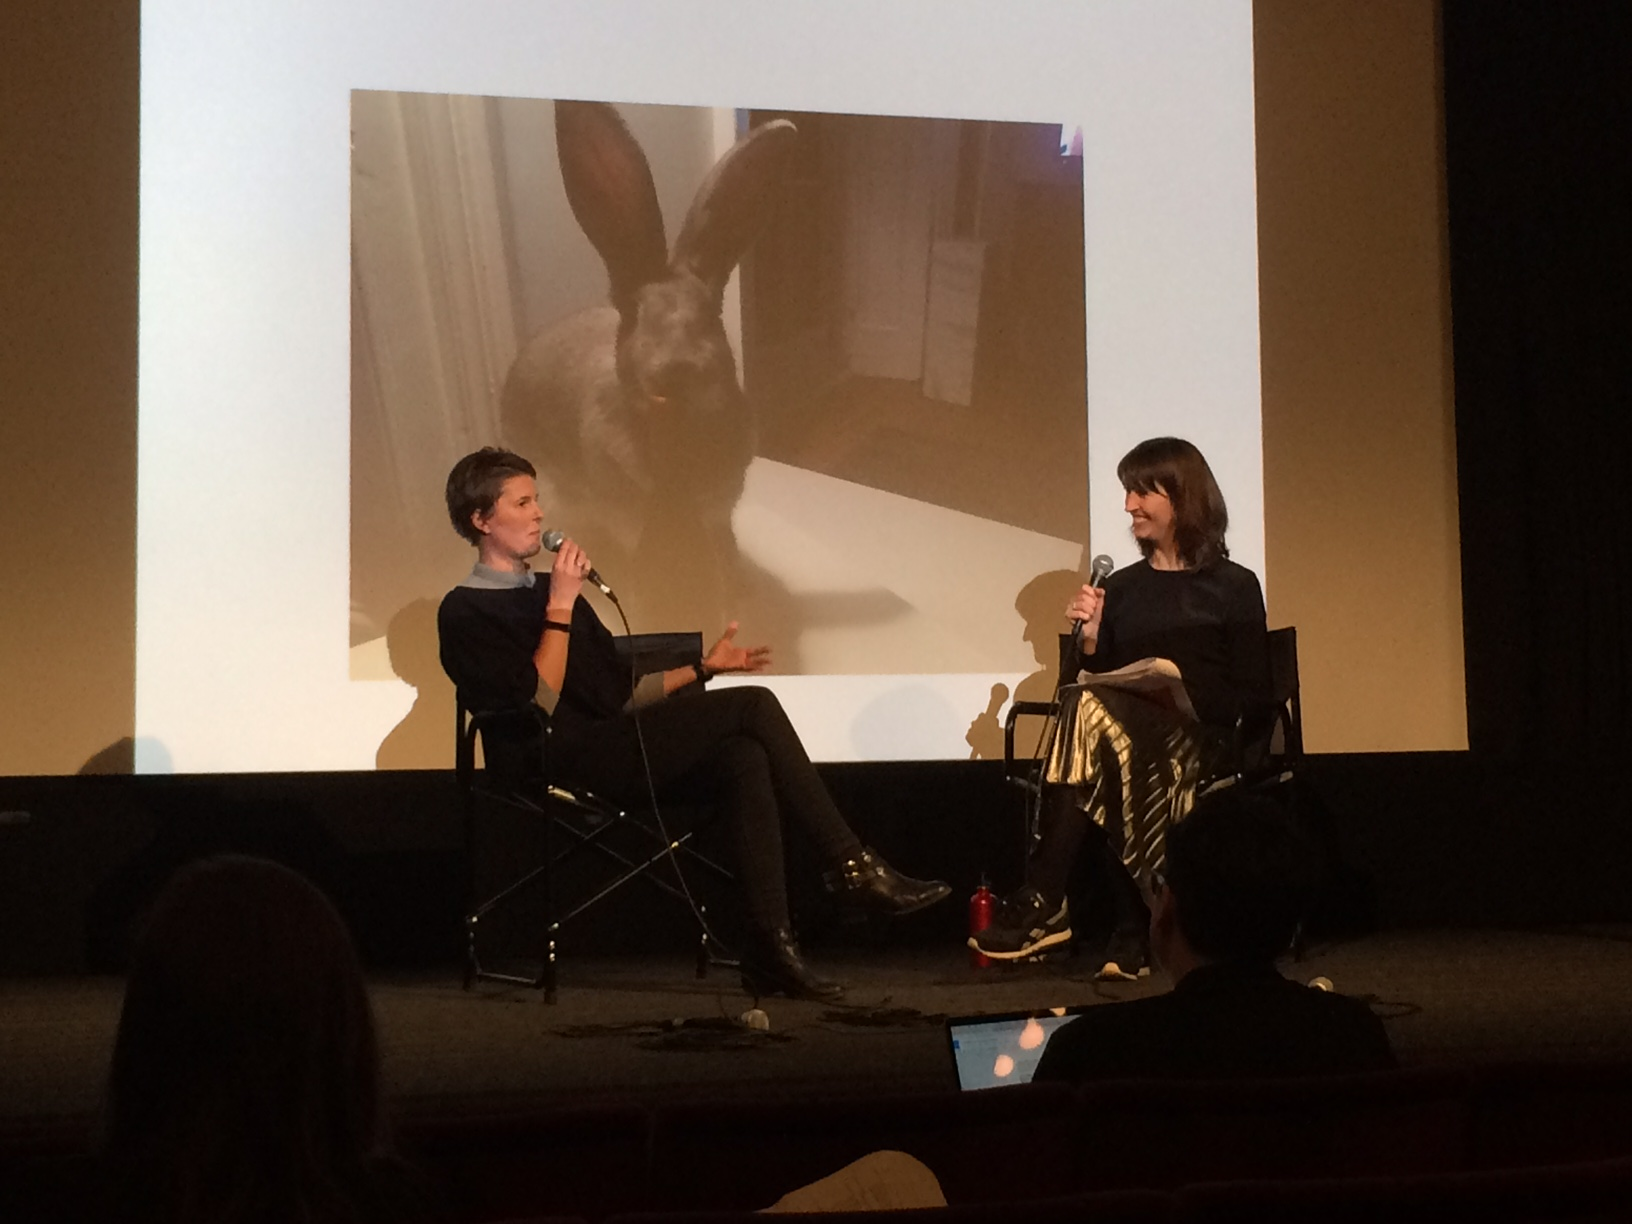 Charlotte Corney (Isle of Wight Zoo) and Honor Beddard (Wellcome Collection) in conversation at 'Wild Minds'.